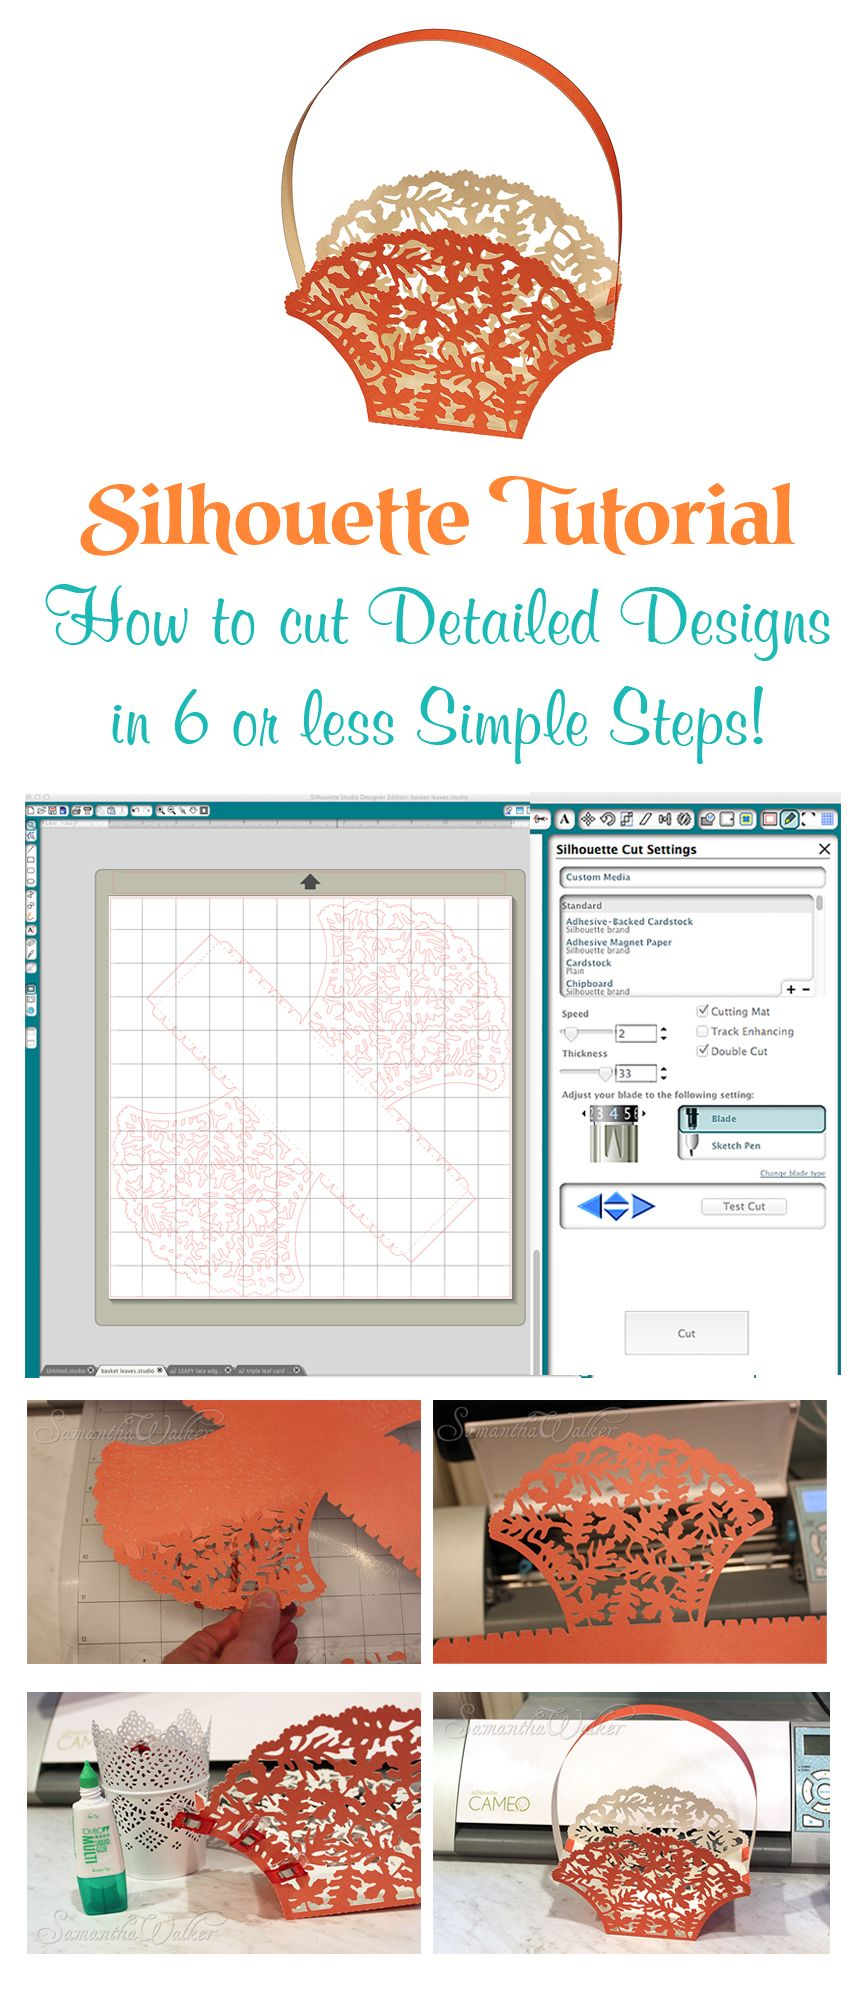 Silhouette Tutorial! Don't Be Afraid Of Cutting Detailed